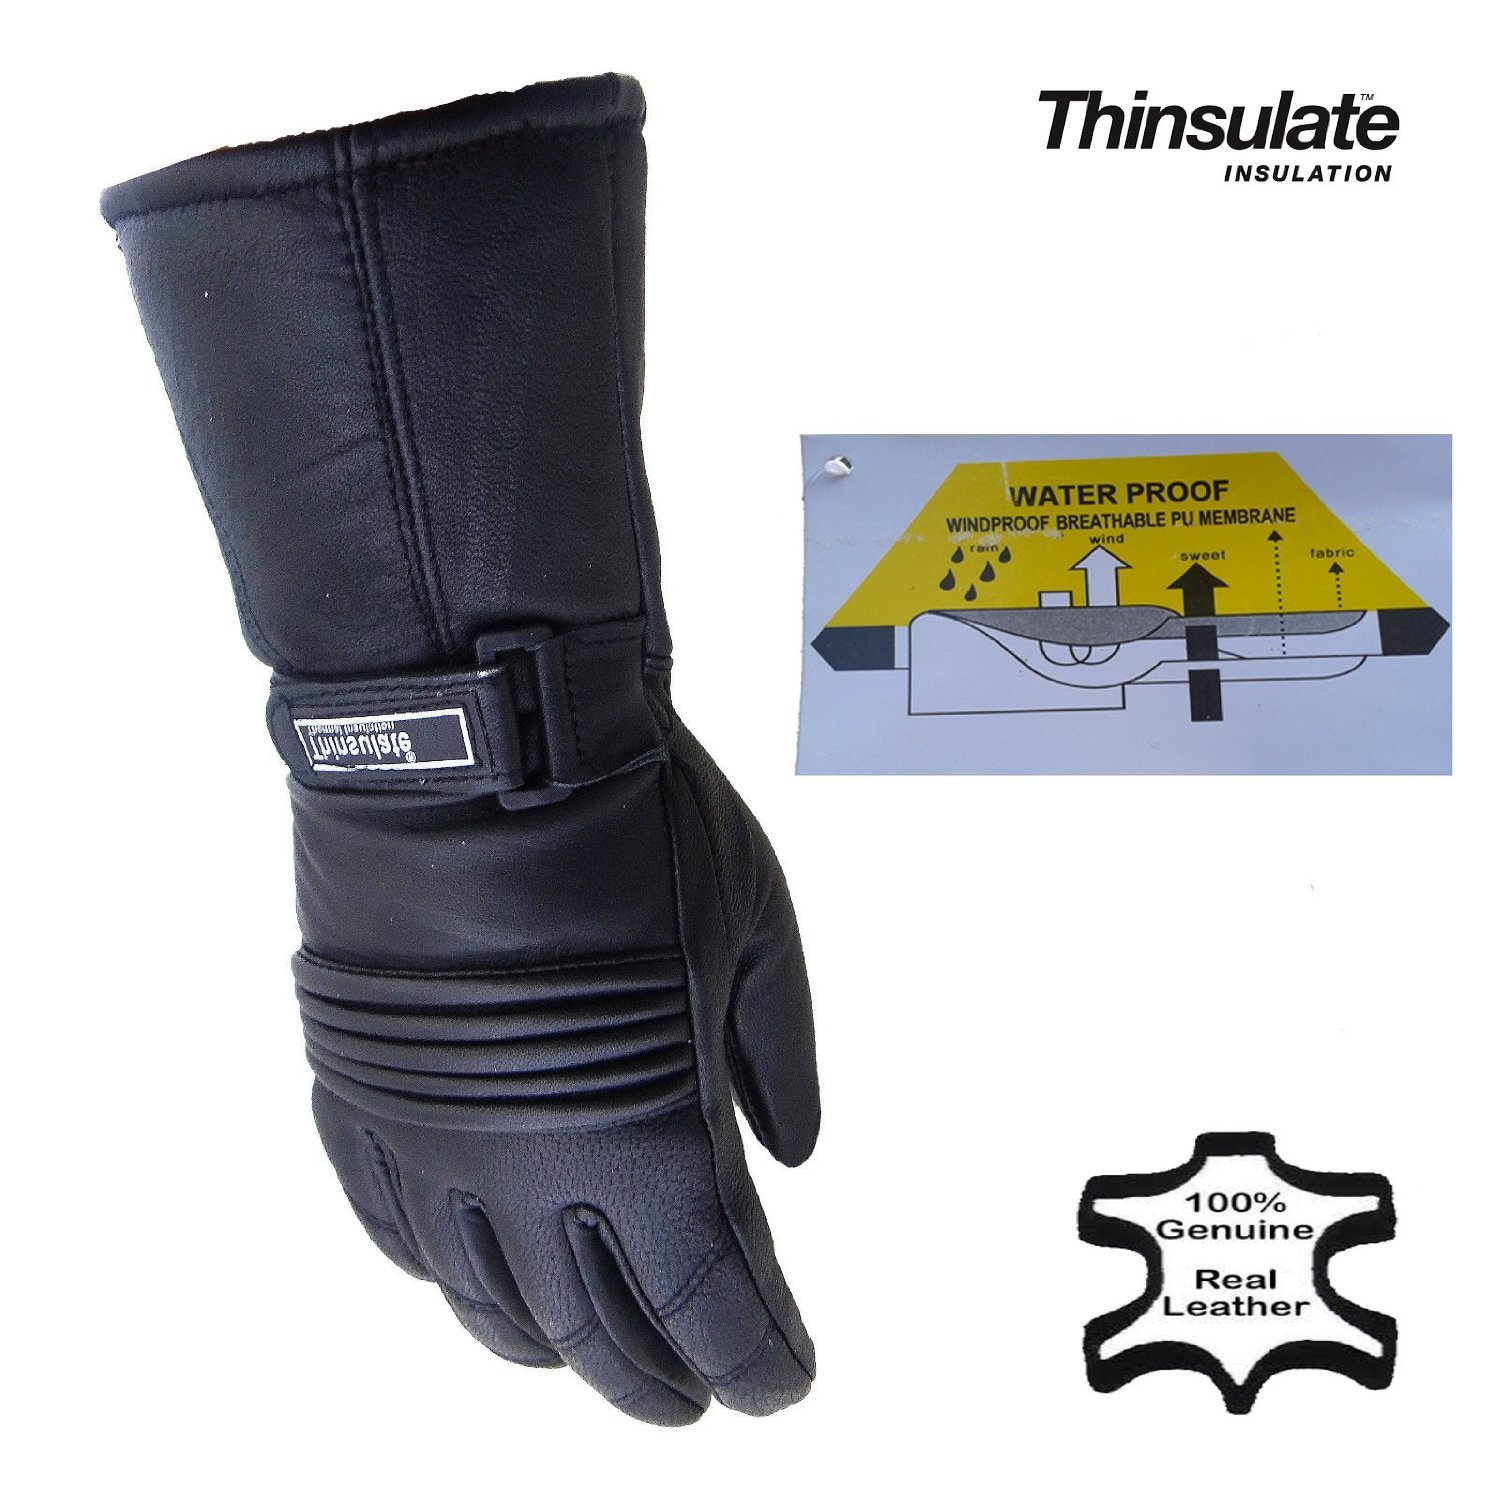 Motorcycle gloves thinsulate - Australian Bikers Gear Ladies Winter Thermal Leather Thinsulate Motorcycle Gloves Amazon Co Uk Clothing